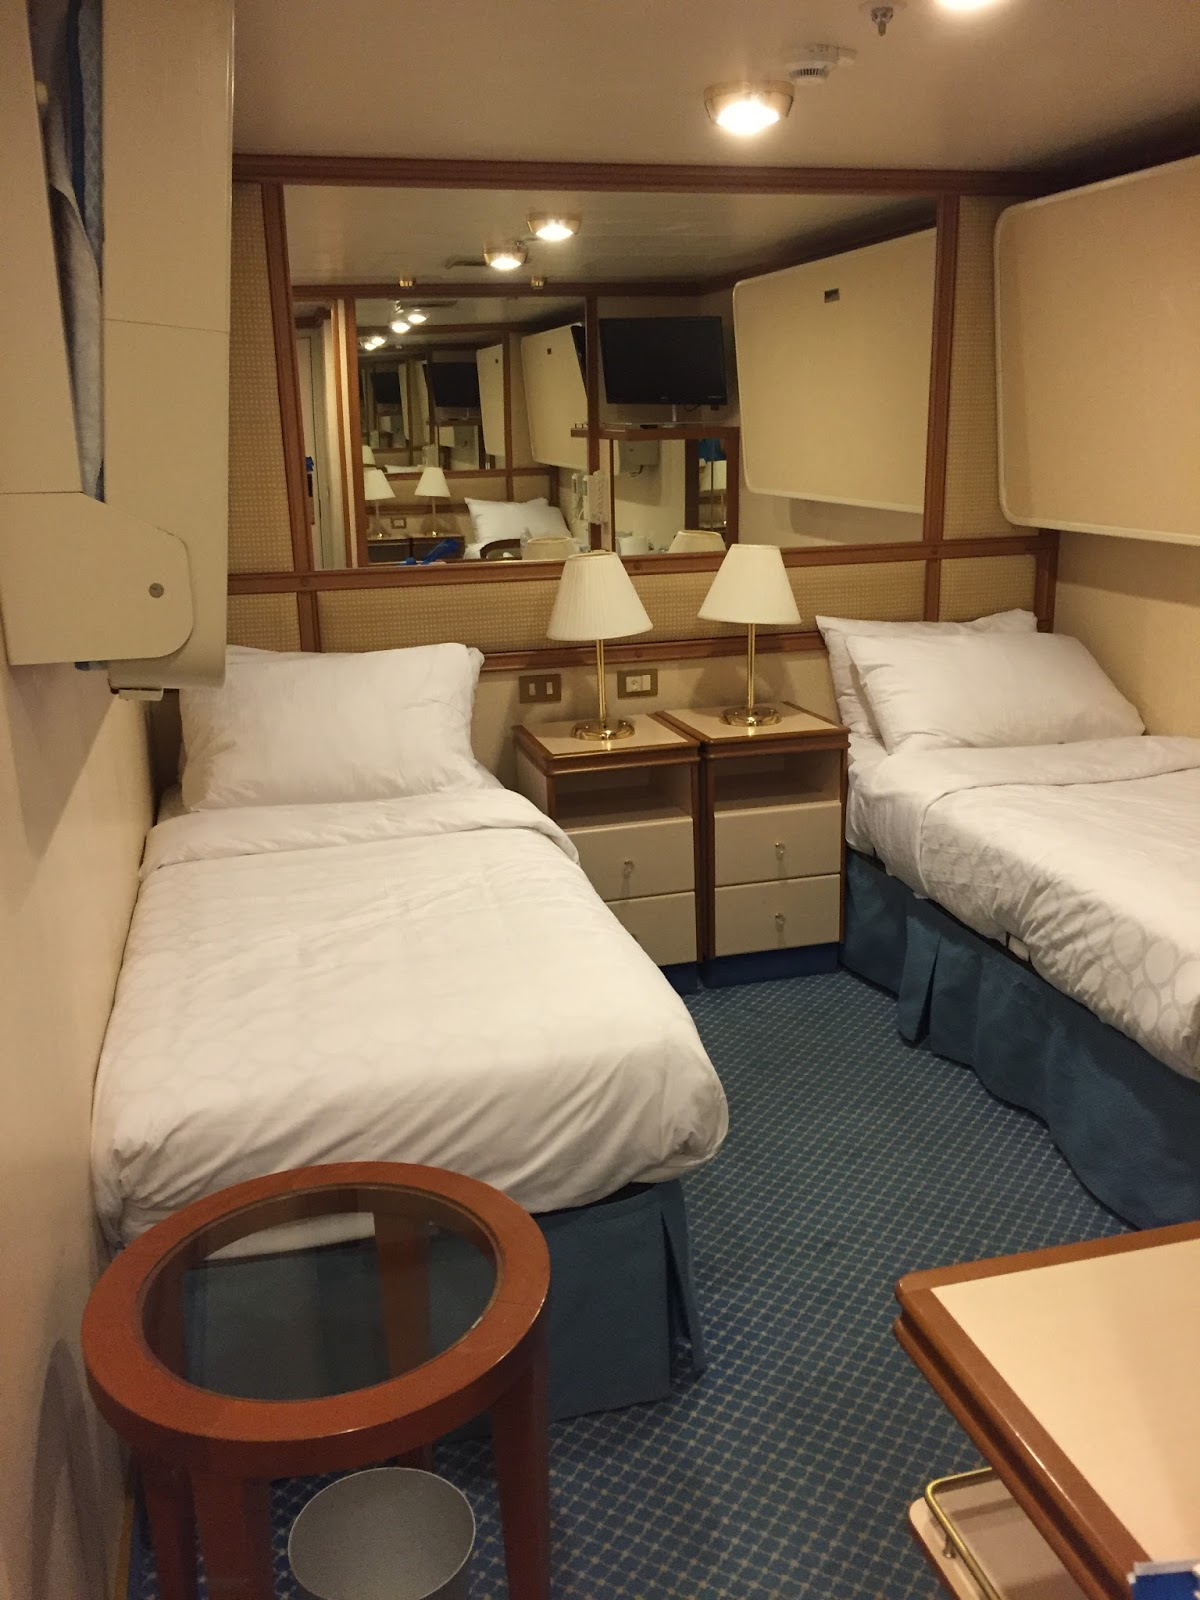 Debs Days Beds On A Cruise Ship Presto Chango